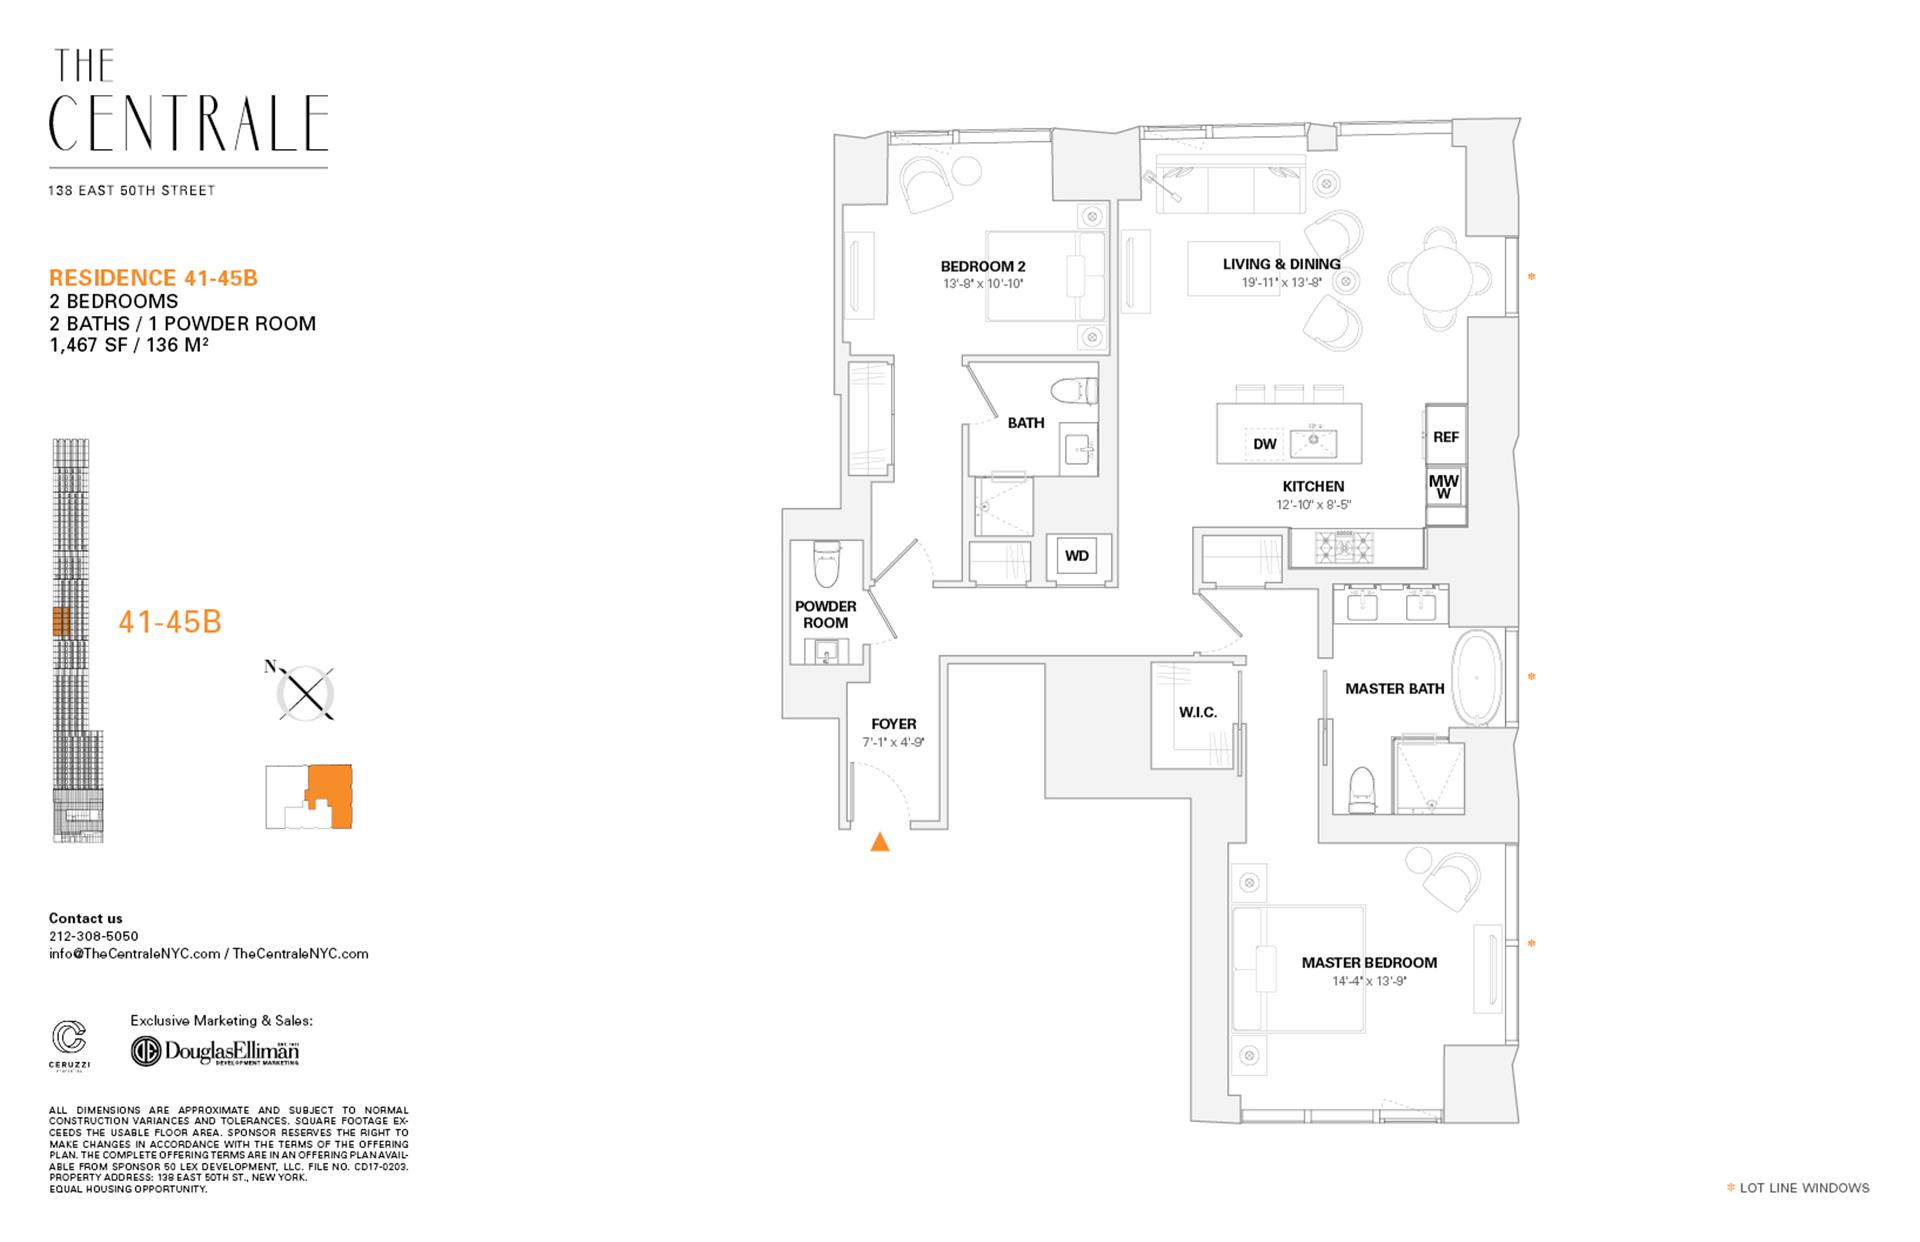 Floor plan of The Centrale, 138 East 50th Street, 43B - Midtown, New York